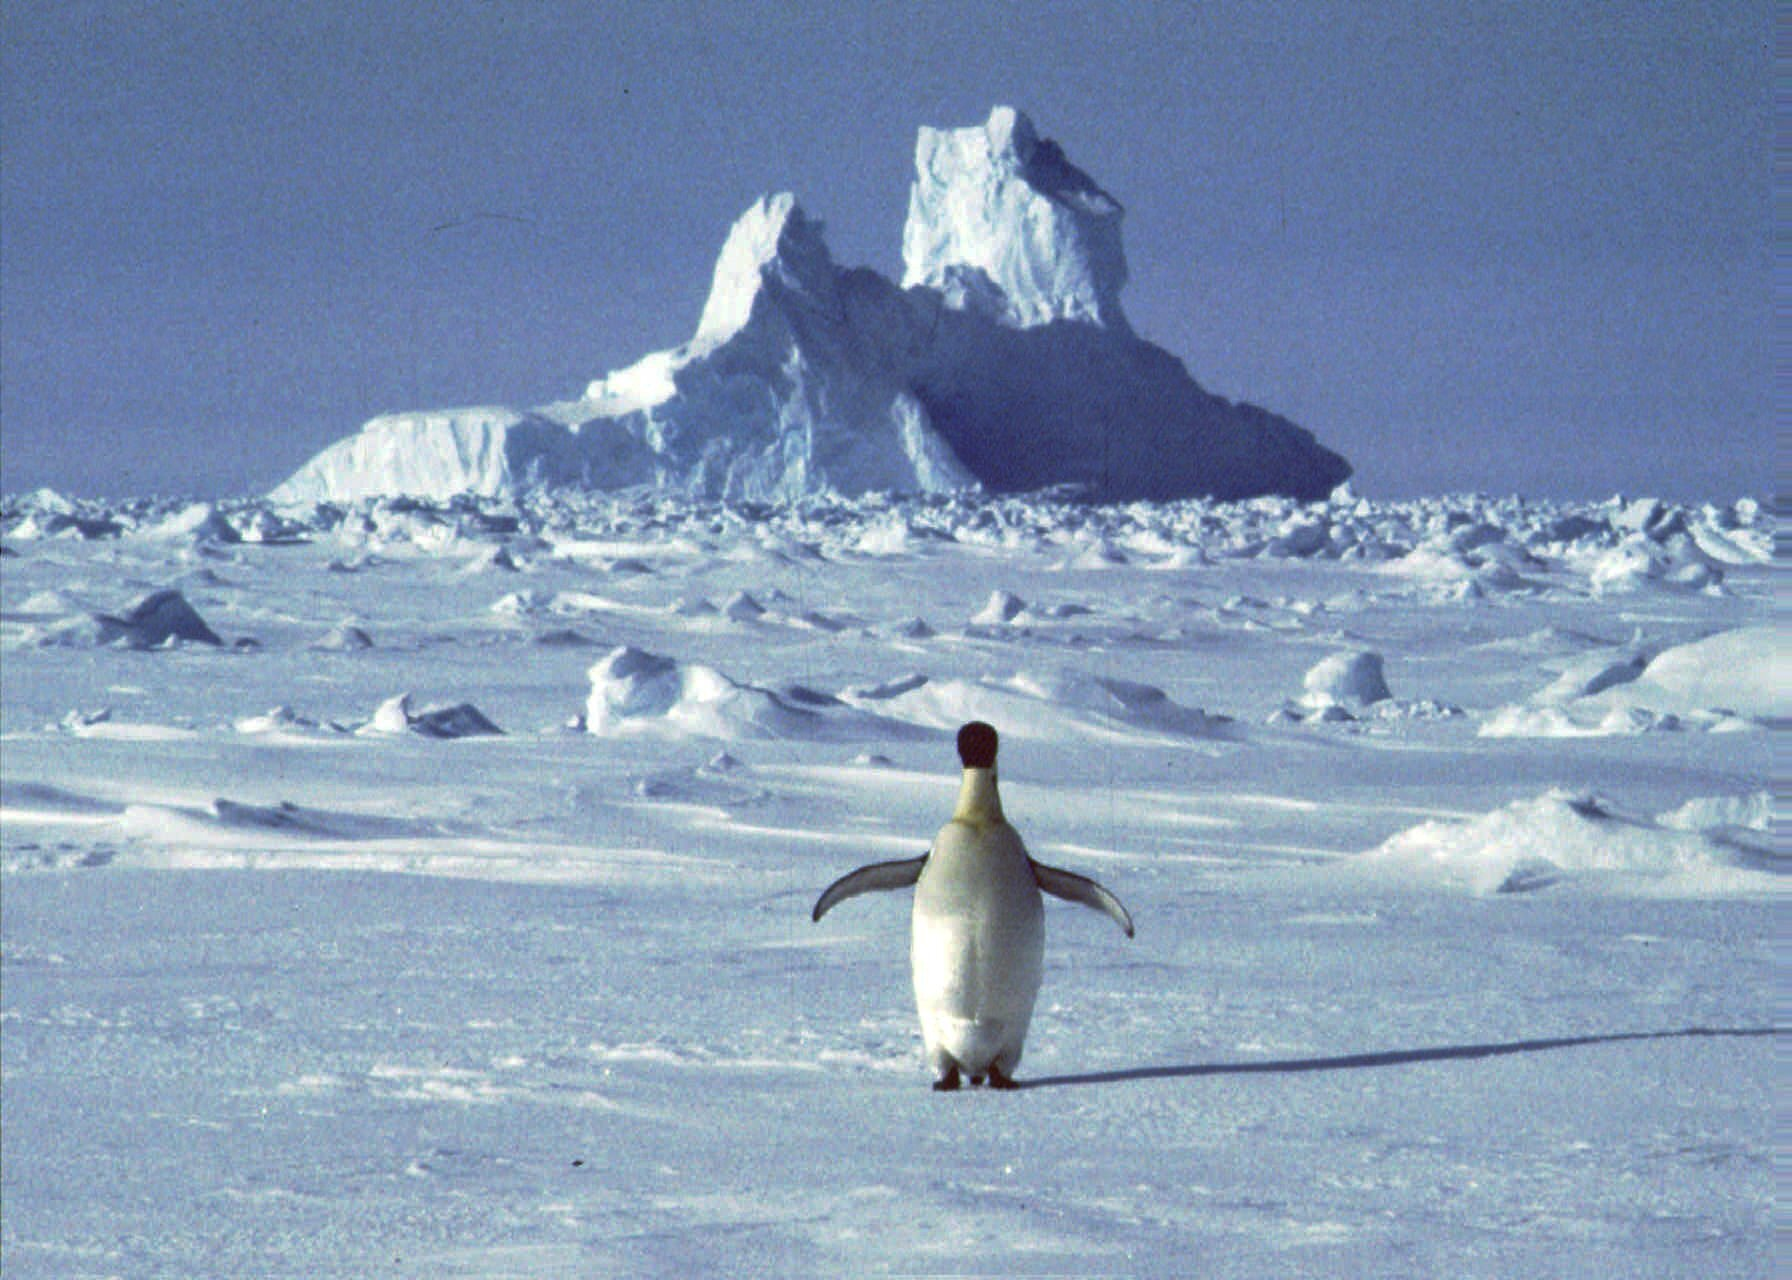 Greenland and Antarctica ice melting 6 times faster than they were in the '90s